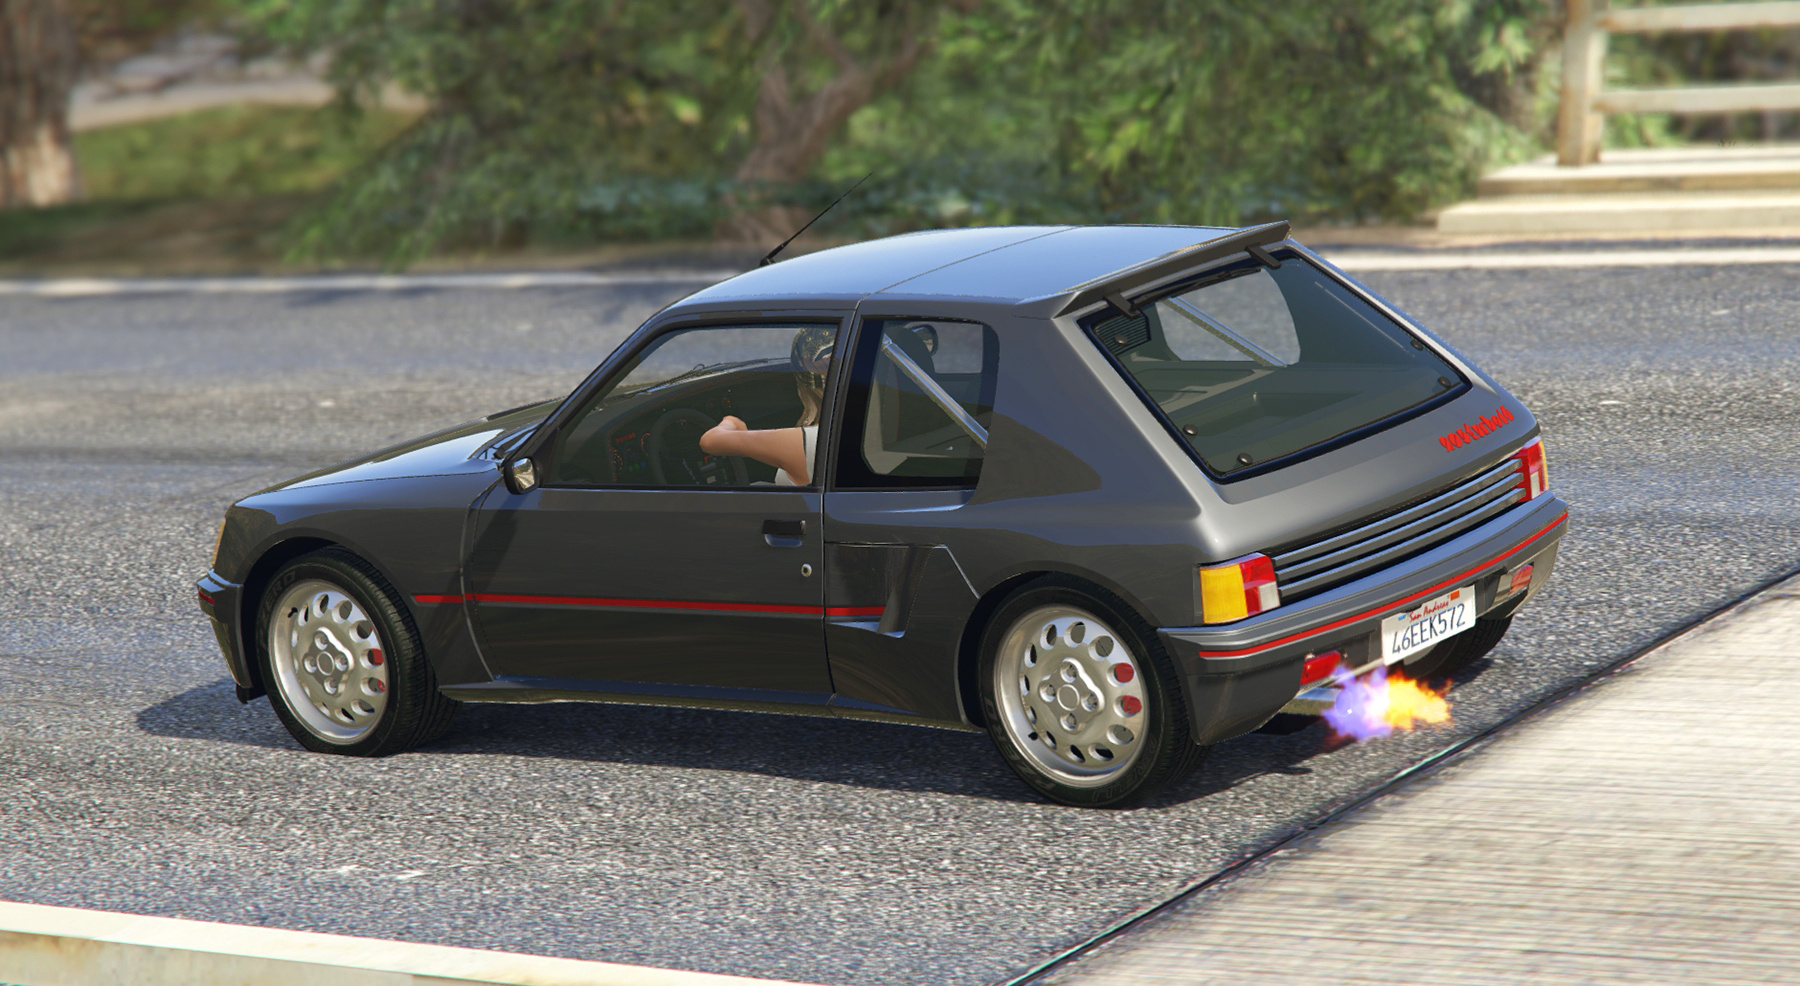 peugeot 205 turbo 16 add on tuning livery gta5. Black Bedroom Furniture Sets. Home Design Ideas